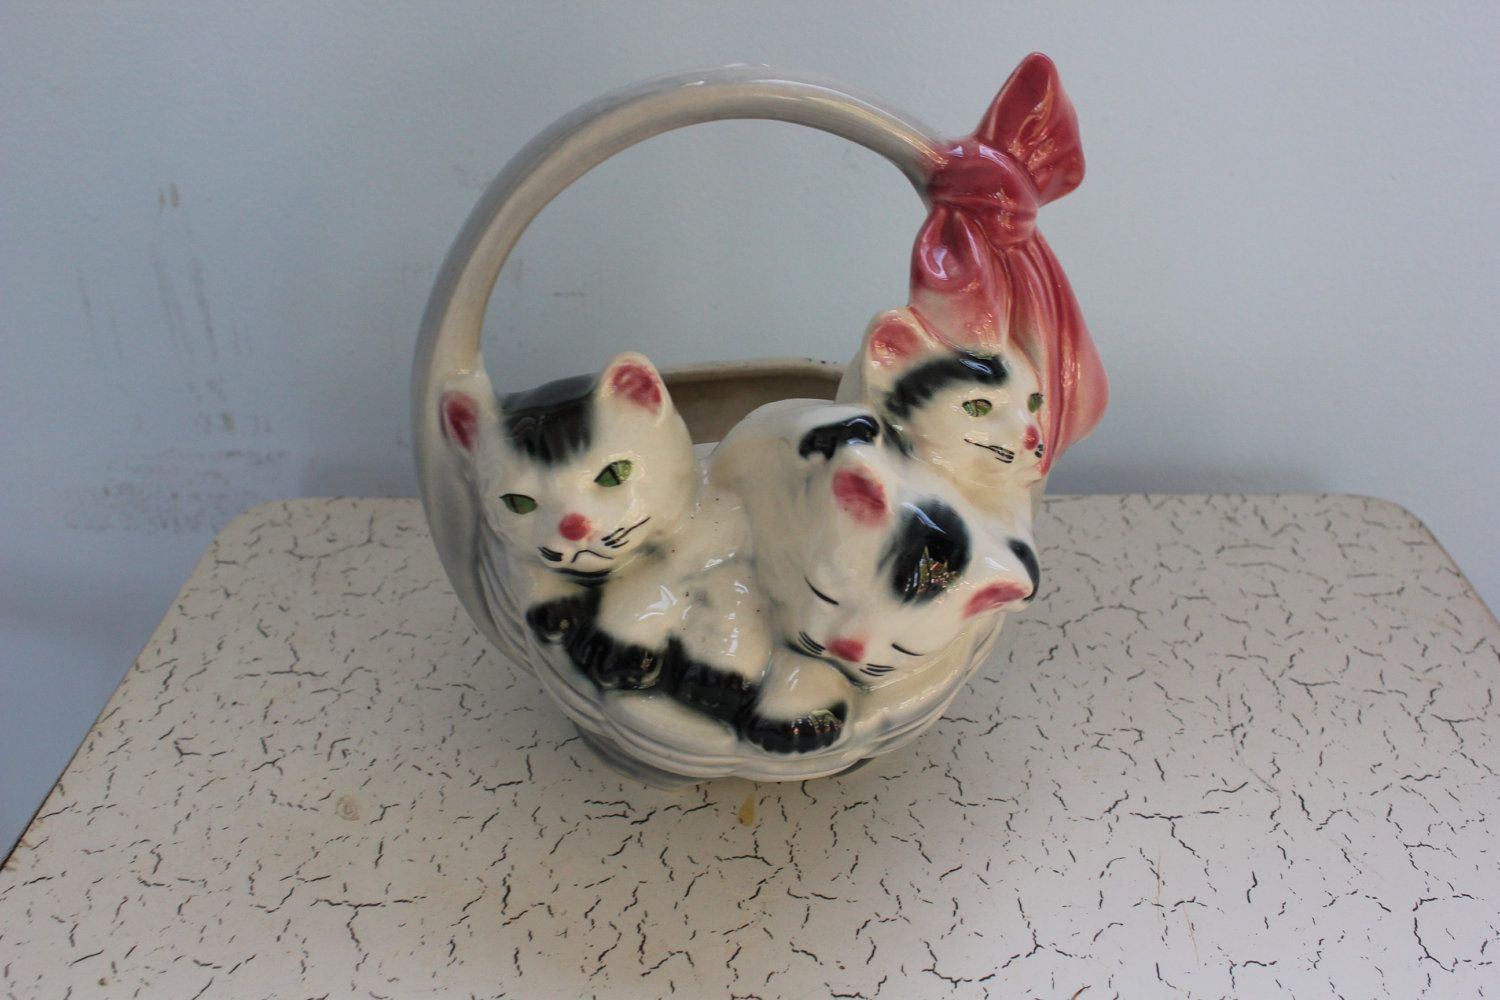 Antique 1950 S Kittens In A Basket Ceramic Planter 16 50 Via Etsy Would Look So Sweet With Some Herbs In It Dining Booth Antiques Ceramic Planters